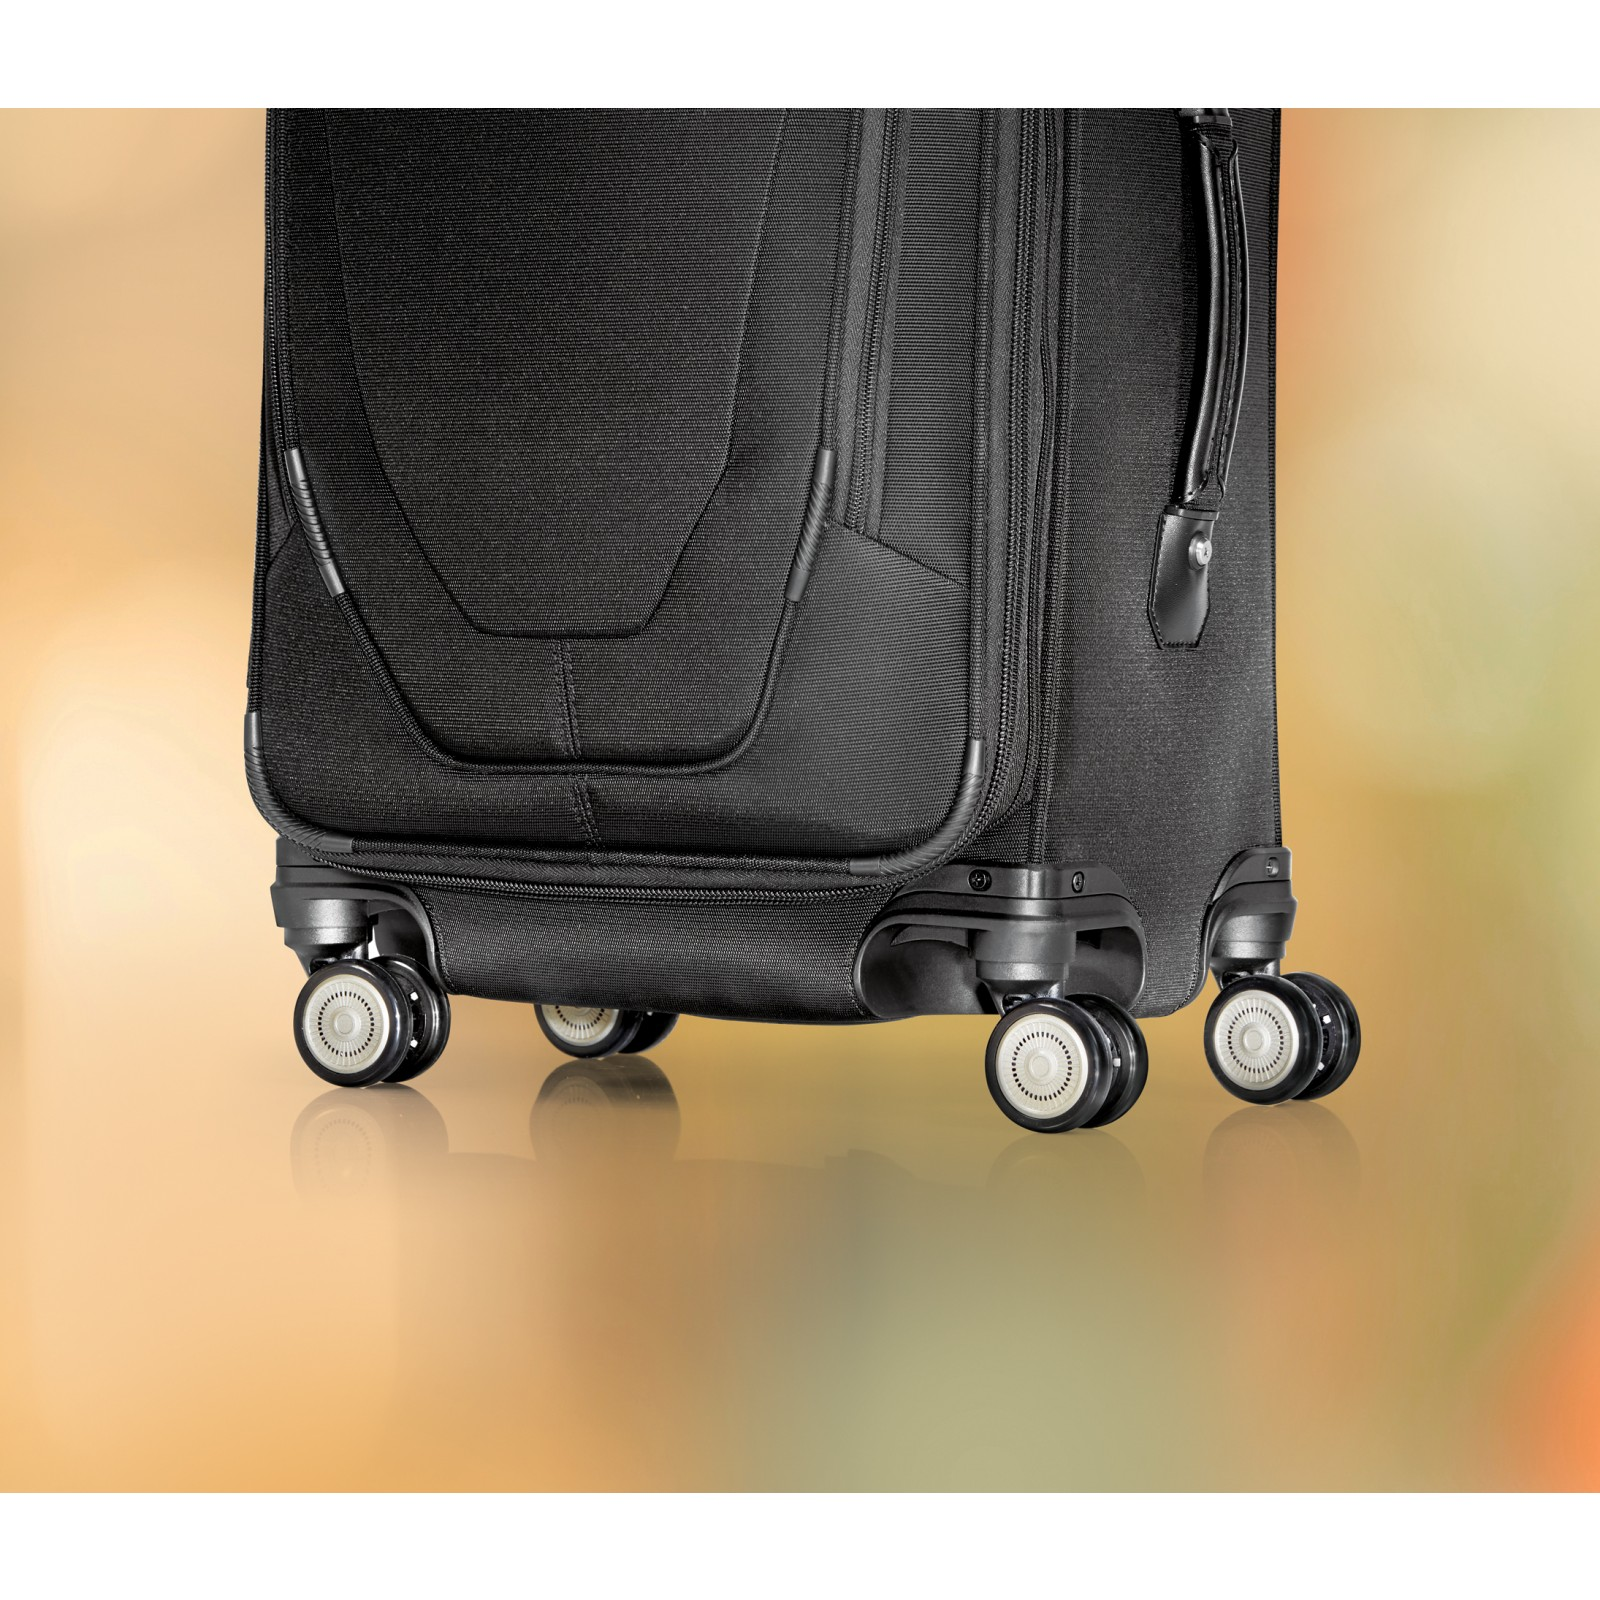 cb0fb02c2 Travelpro Crew 11 Spinner Tote • 407165301 • Luggage World MN